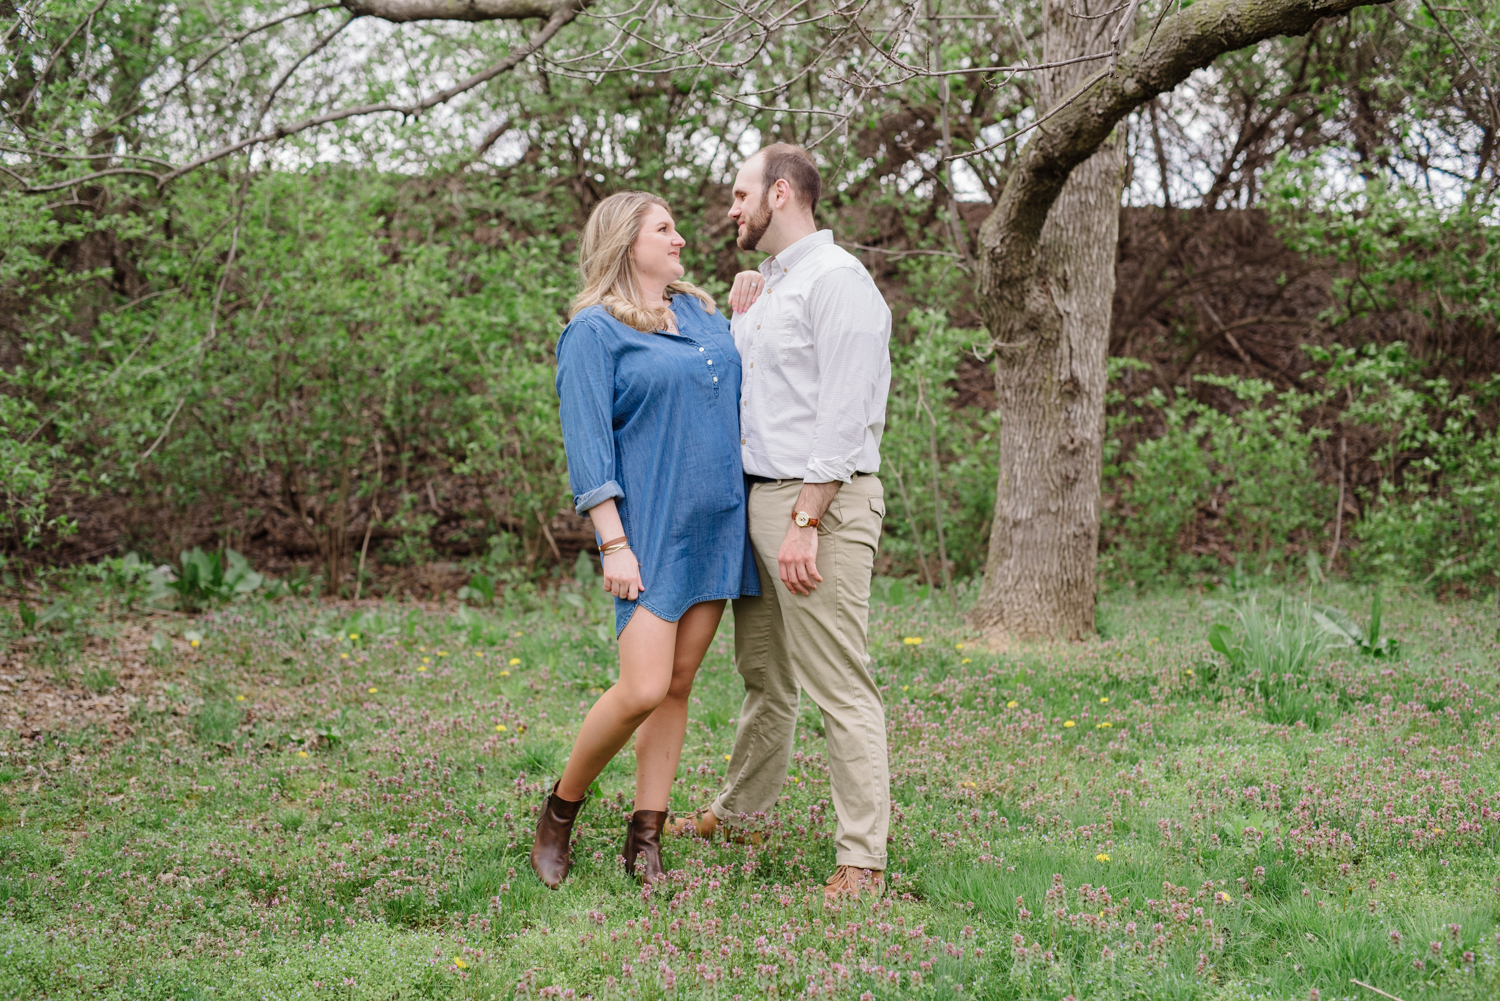 Matt+Melissa- Meadowlands Environmental Center Engagement Session- New Jersey- Olivia Christina Photo-70.JPG